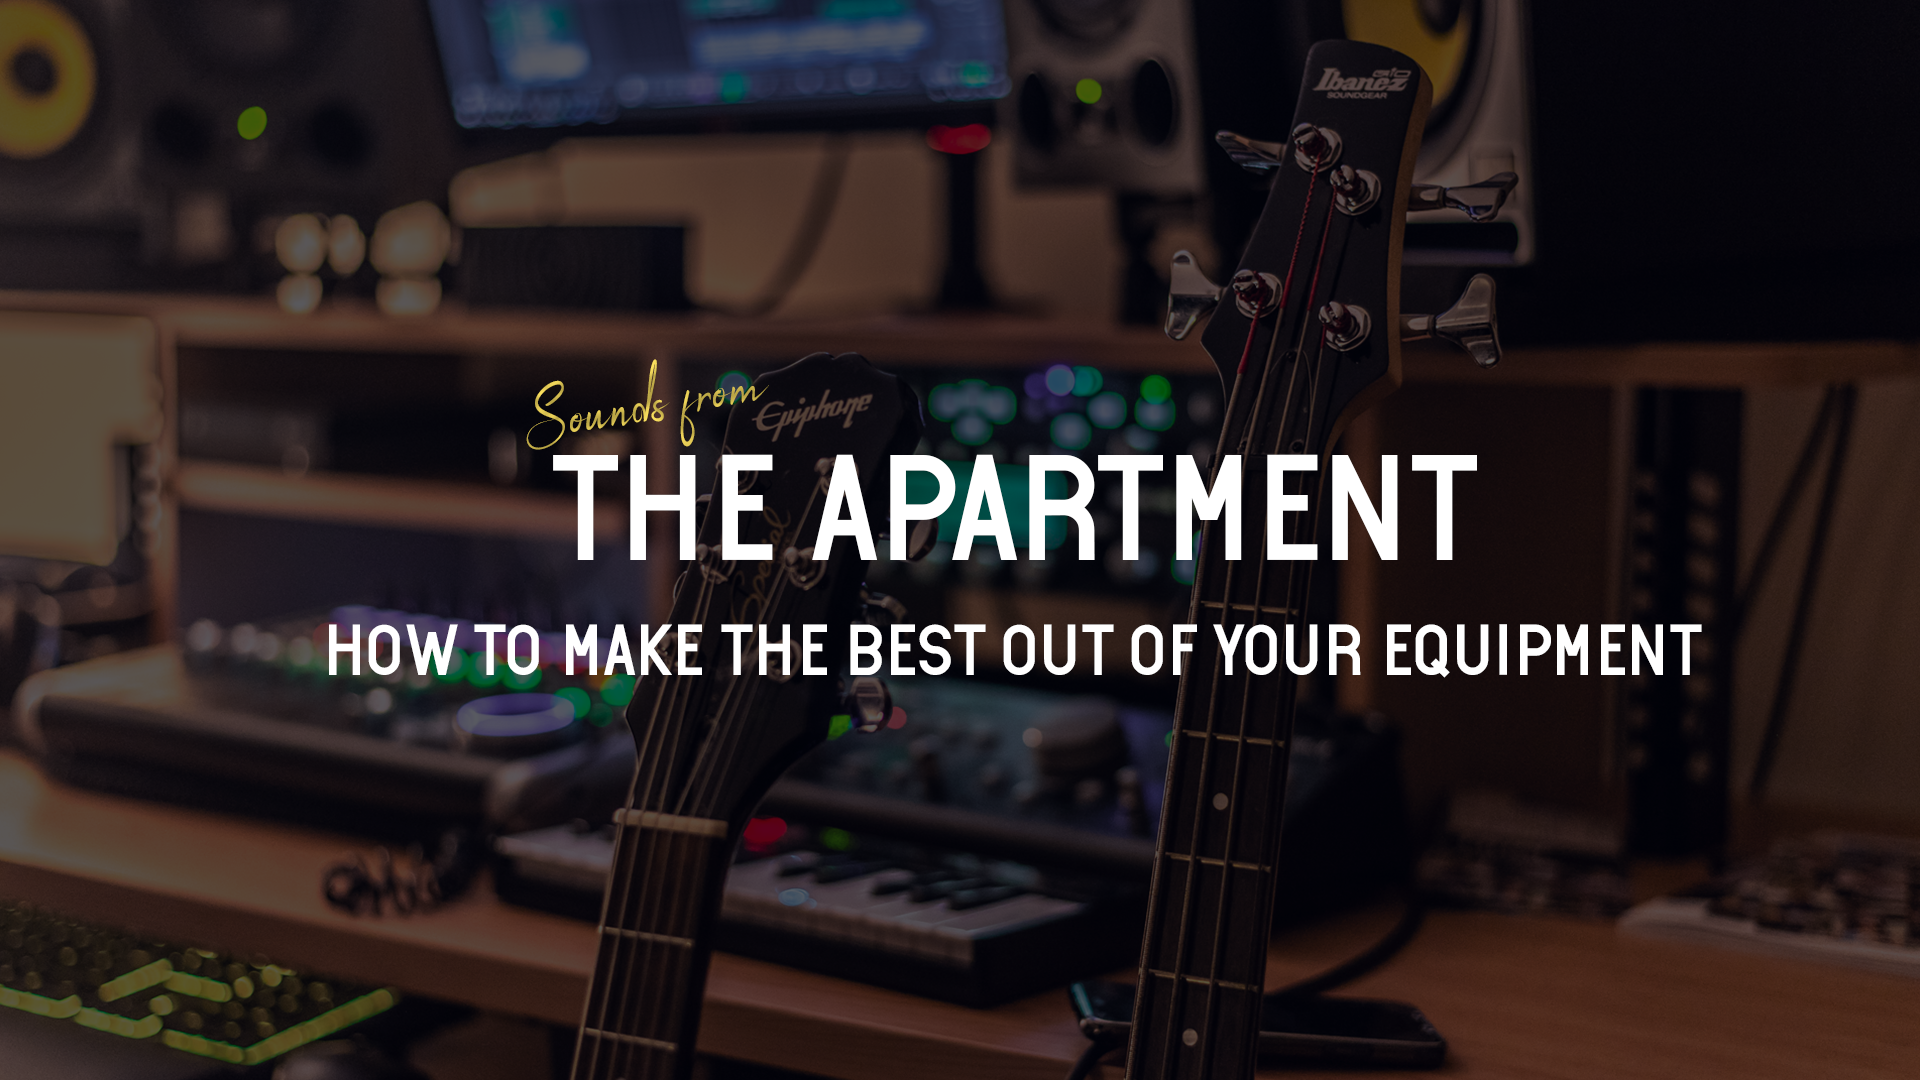 Sounds from the apartment article how to make the best out of your equipment